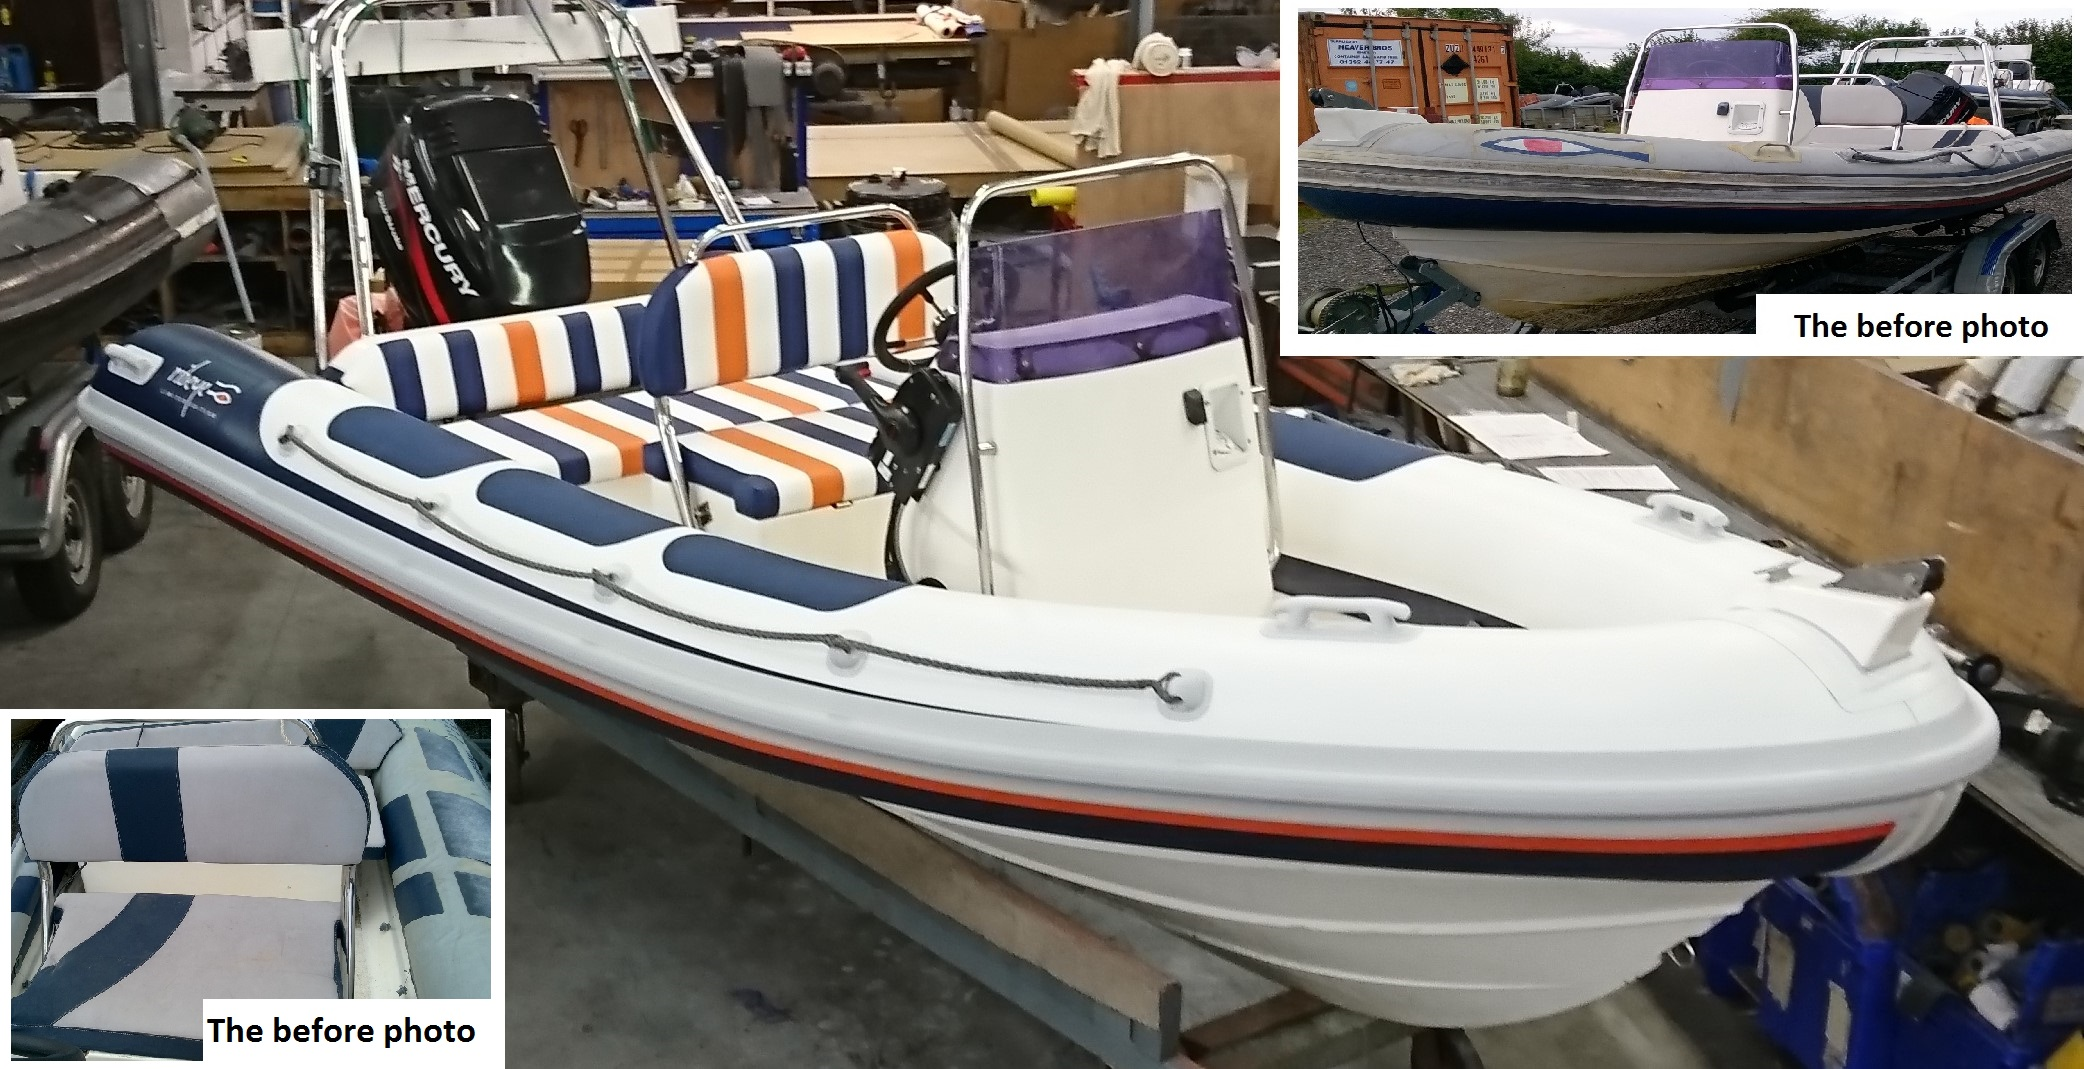 5 m Ribeye with new tubes and marine upholstery - the before and after pictures